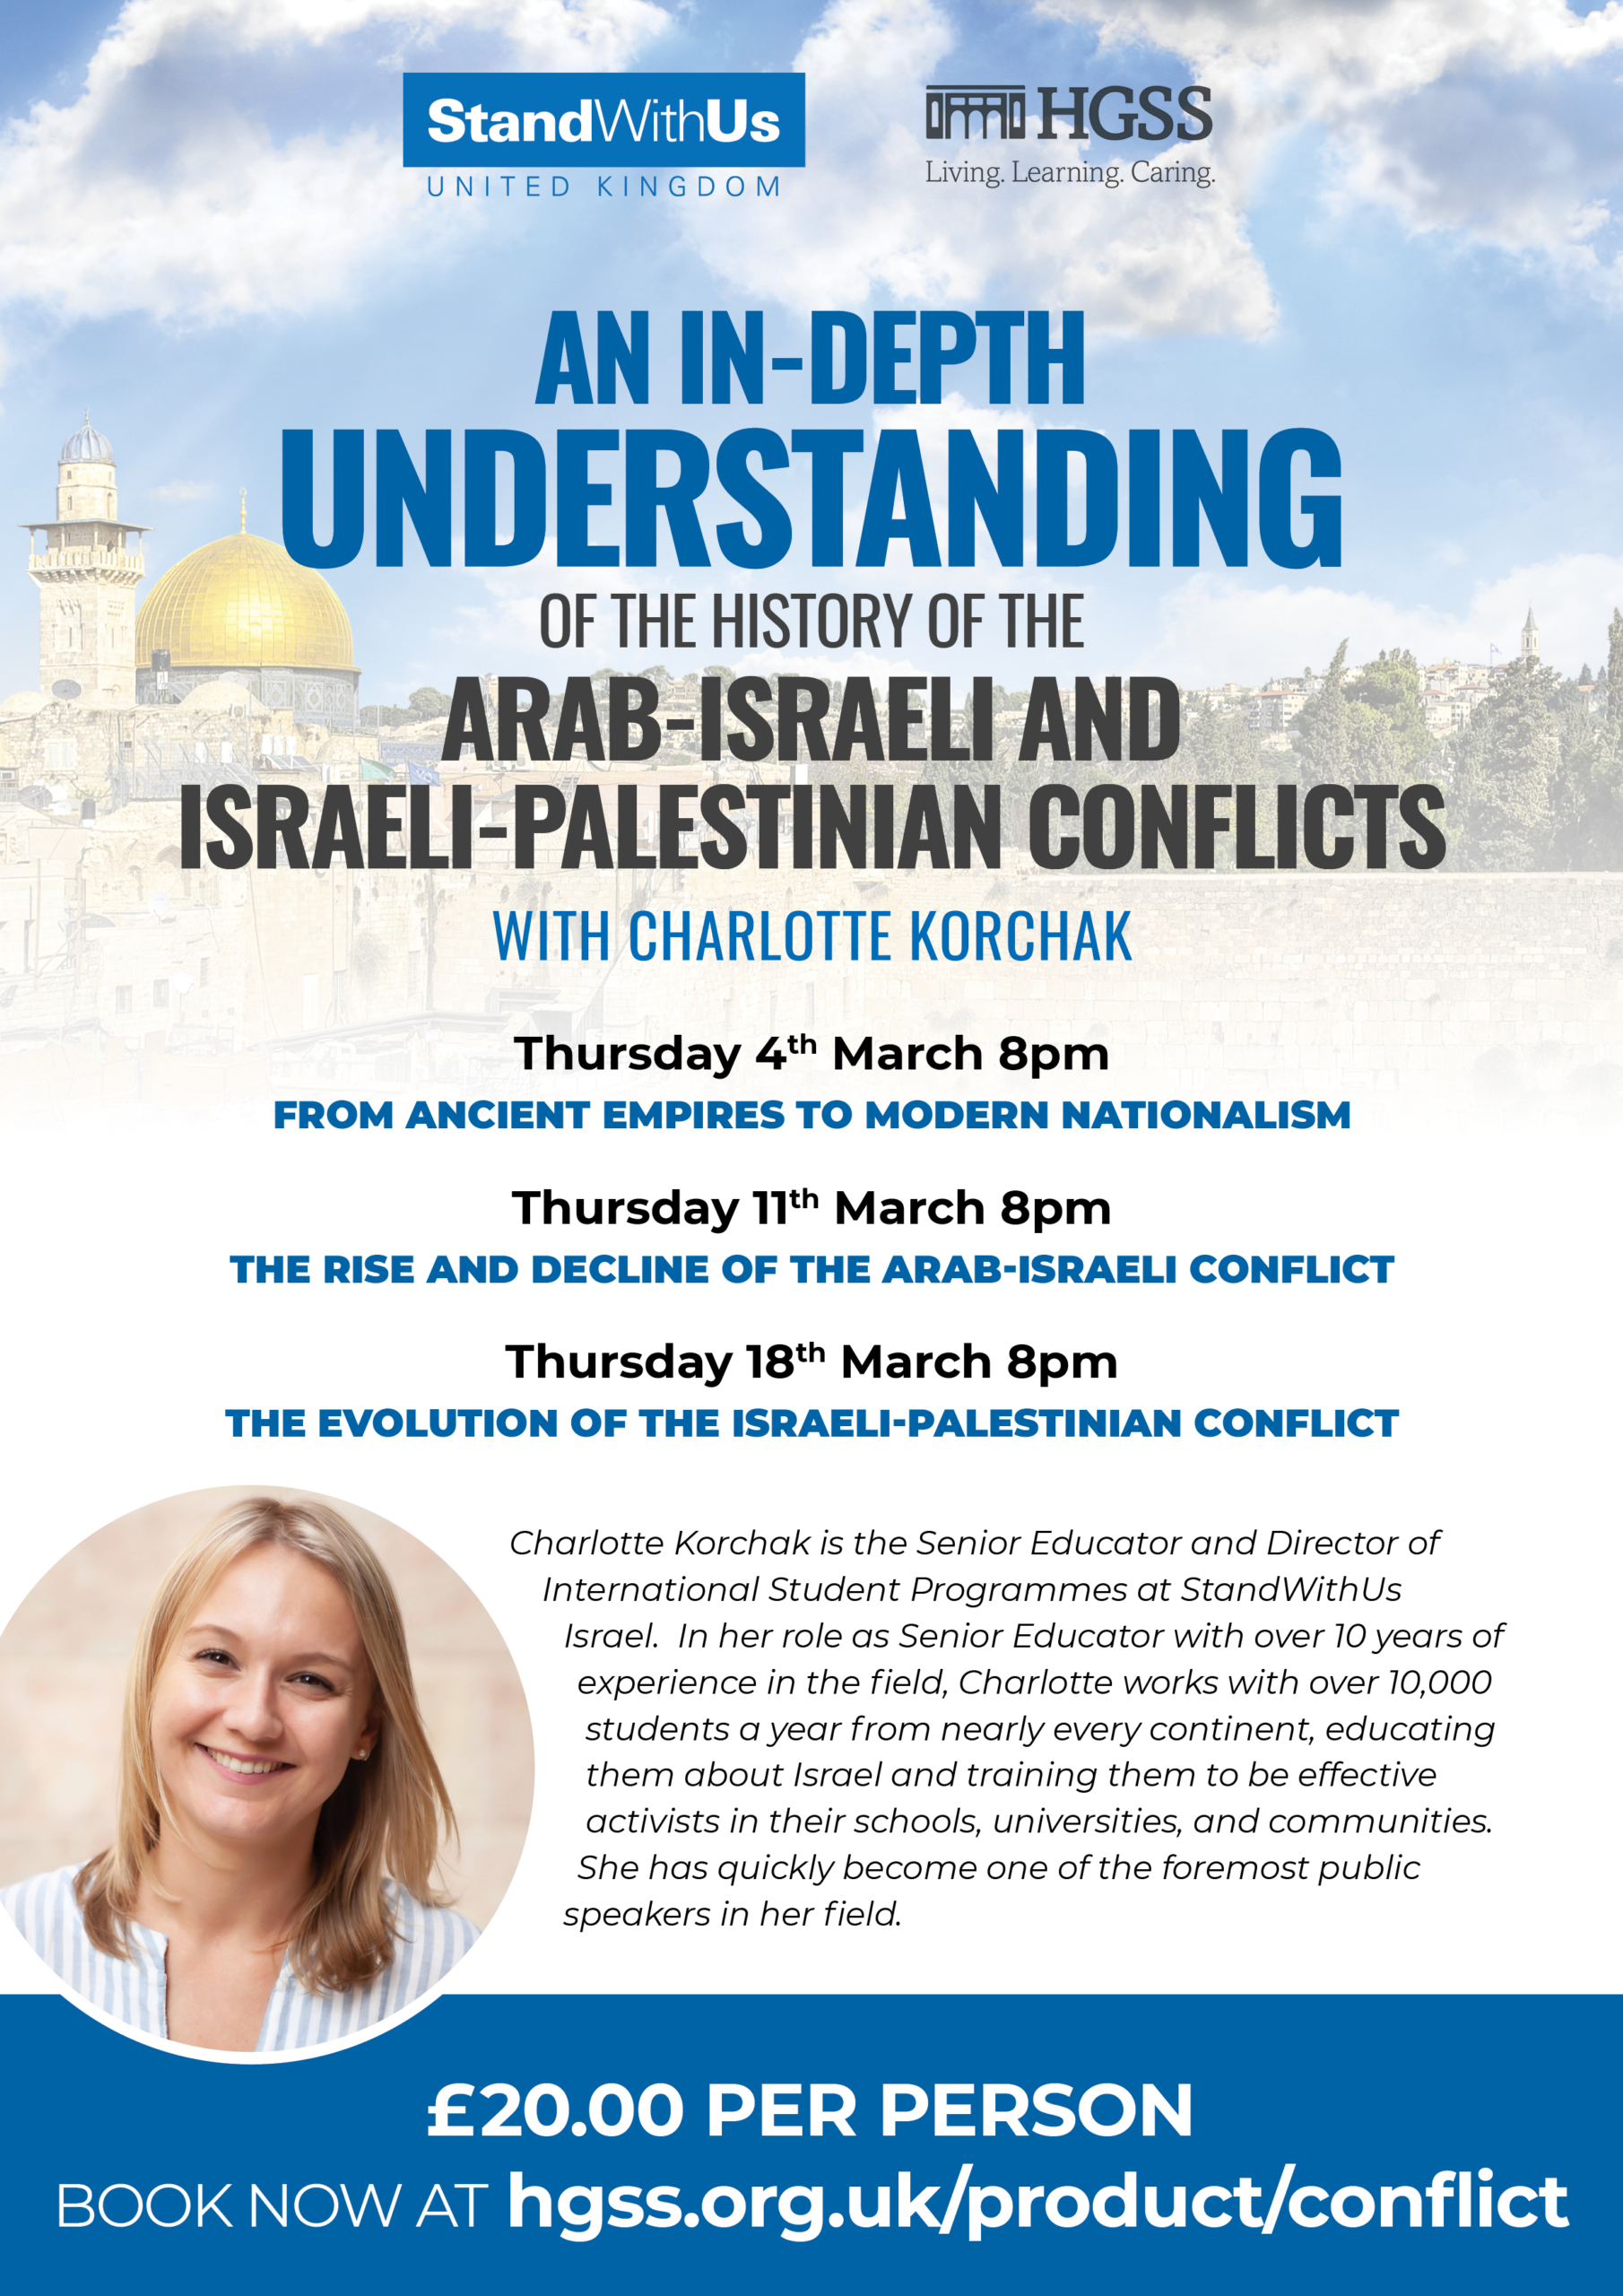 StandWithUs UK – History of the Arab-Israeli and Israeli-Palestinian Conflicts @ Zoom